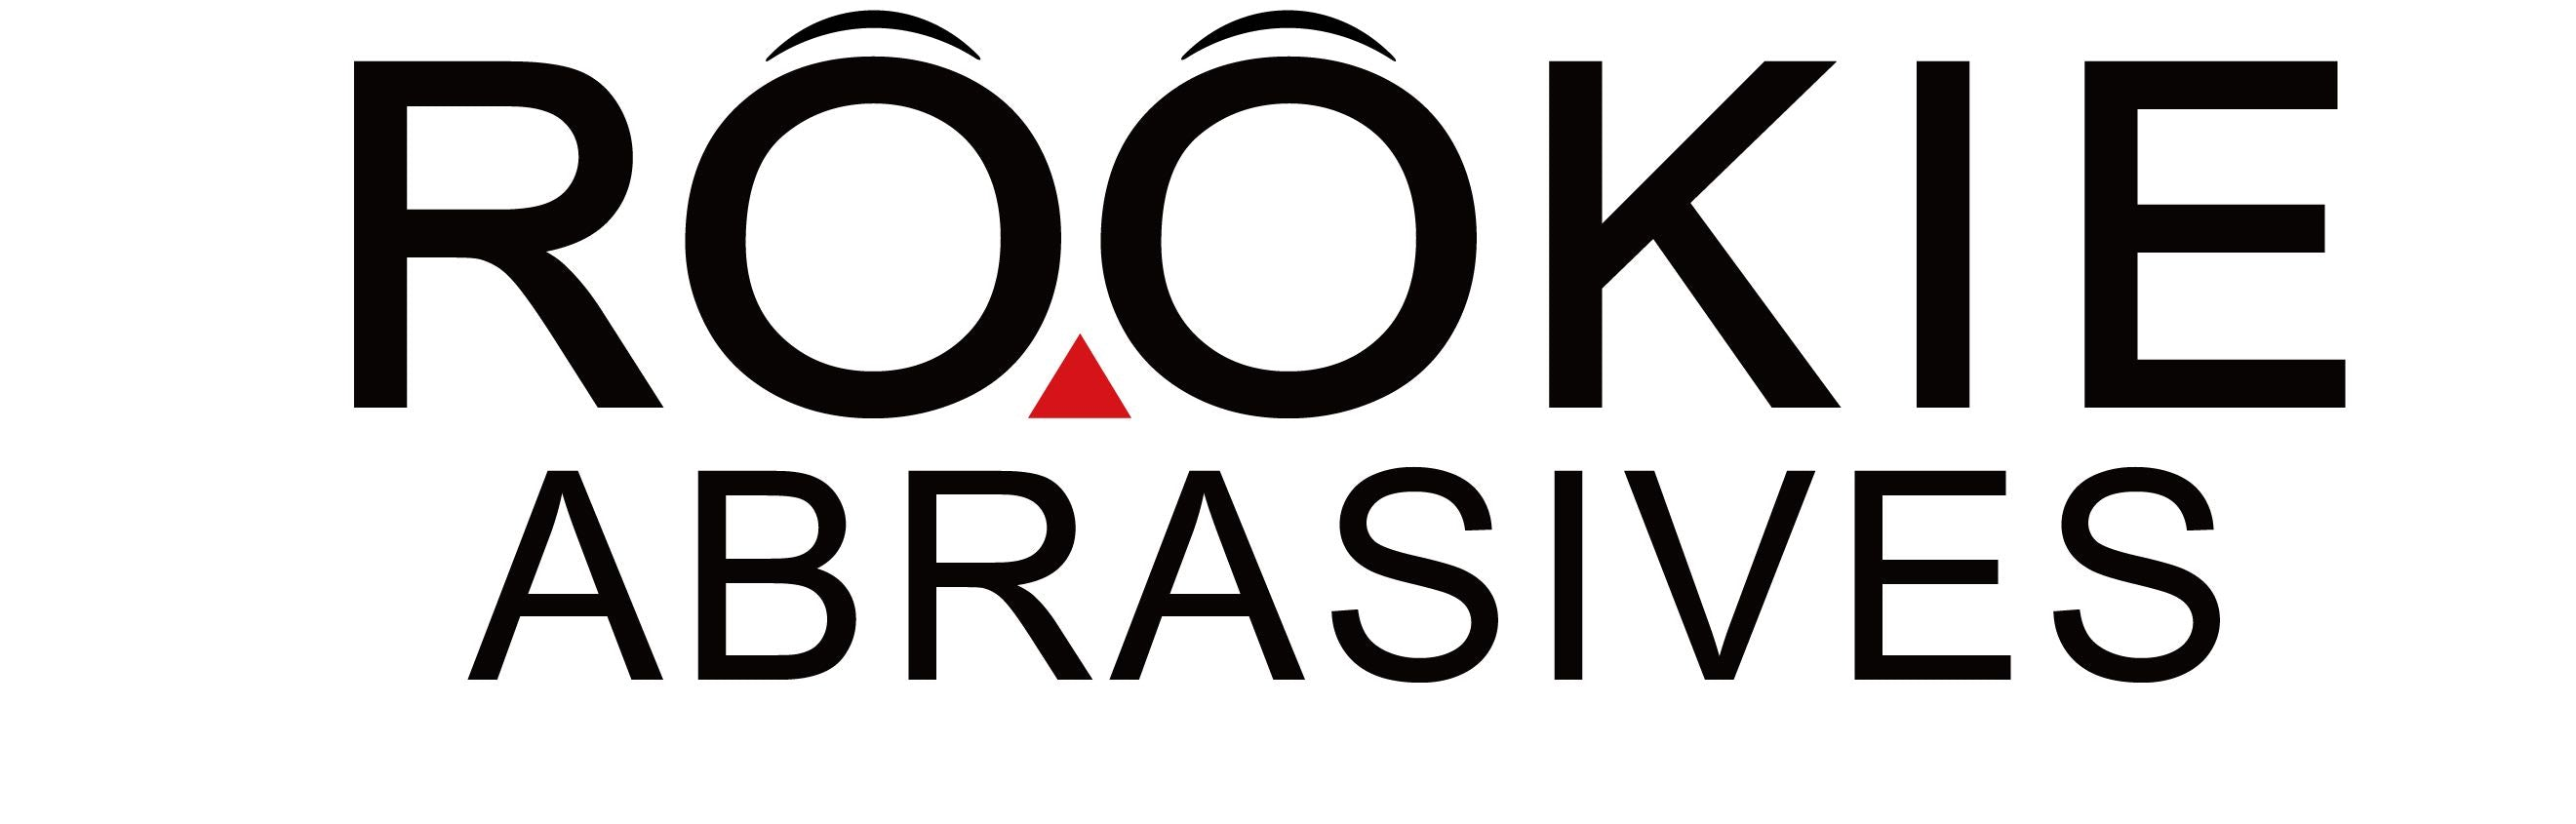 ROOKIE ABRASIVES